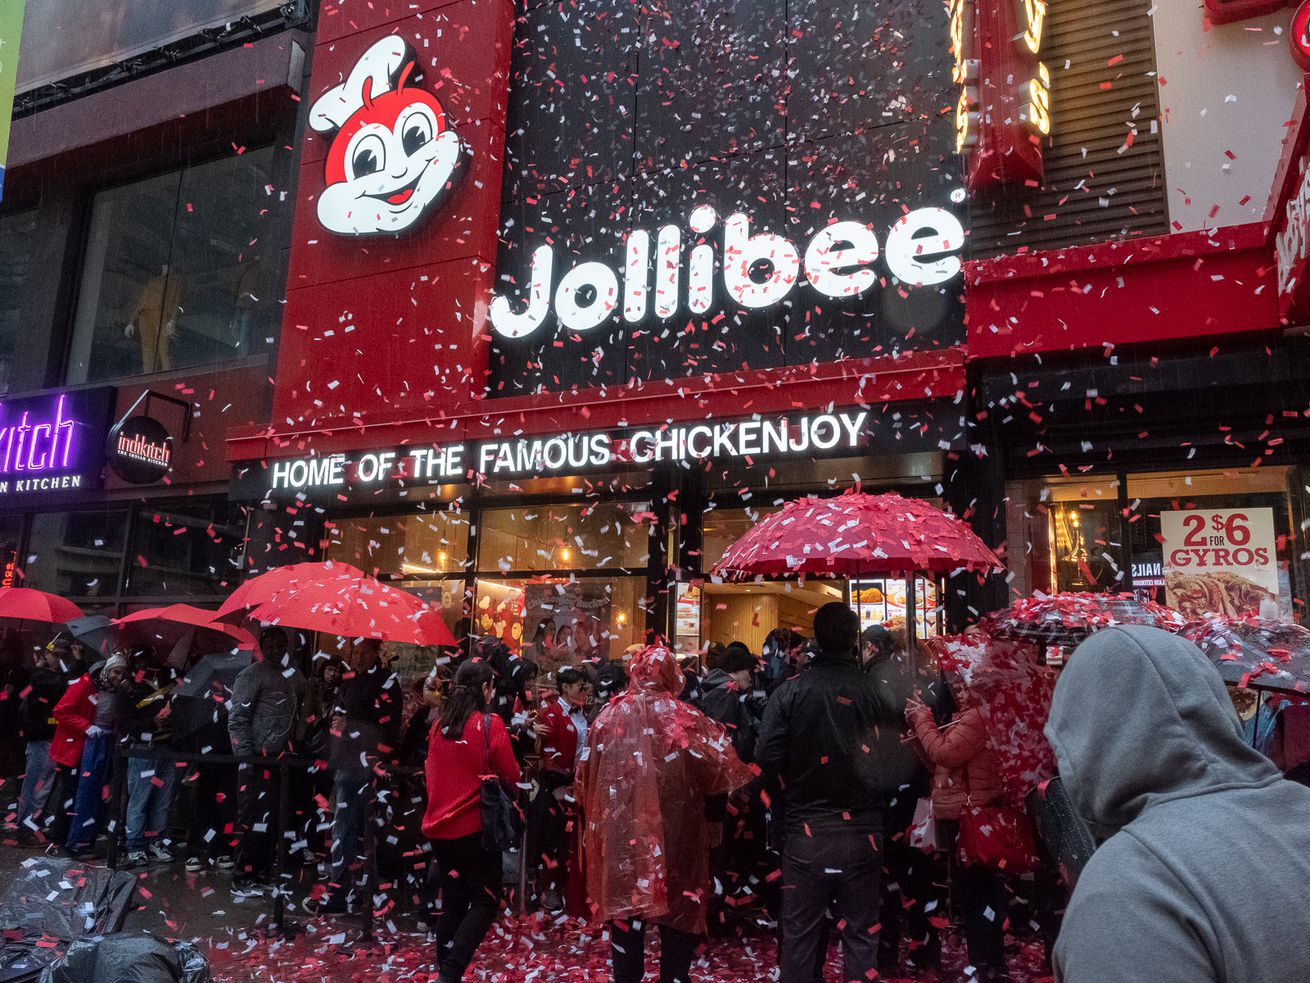 The weekend's nor'easter shower is momentarily replaced by a shower of confetti at the opening of Jollibee on 609 Eighth Ave. in Midtown Manhattan.